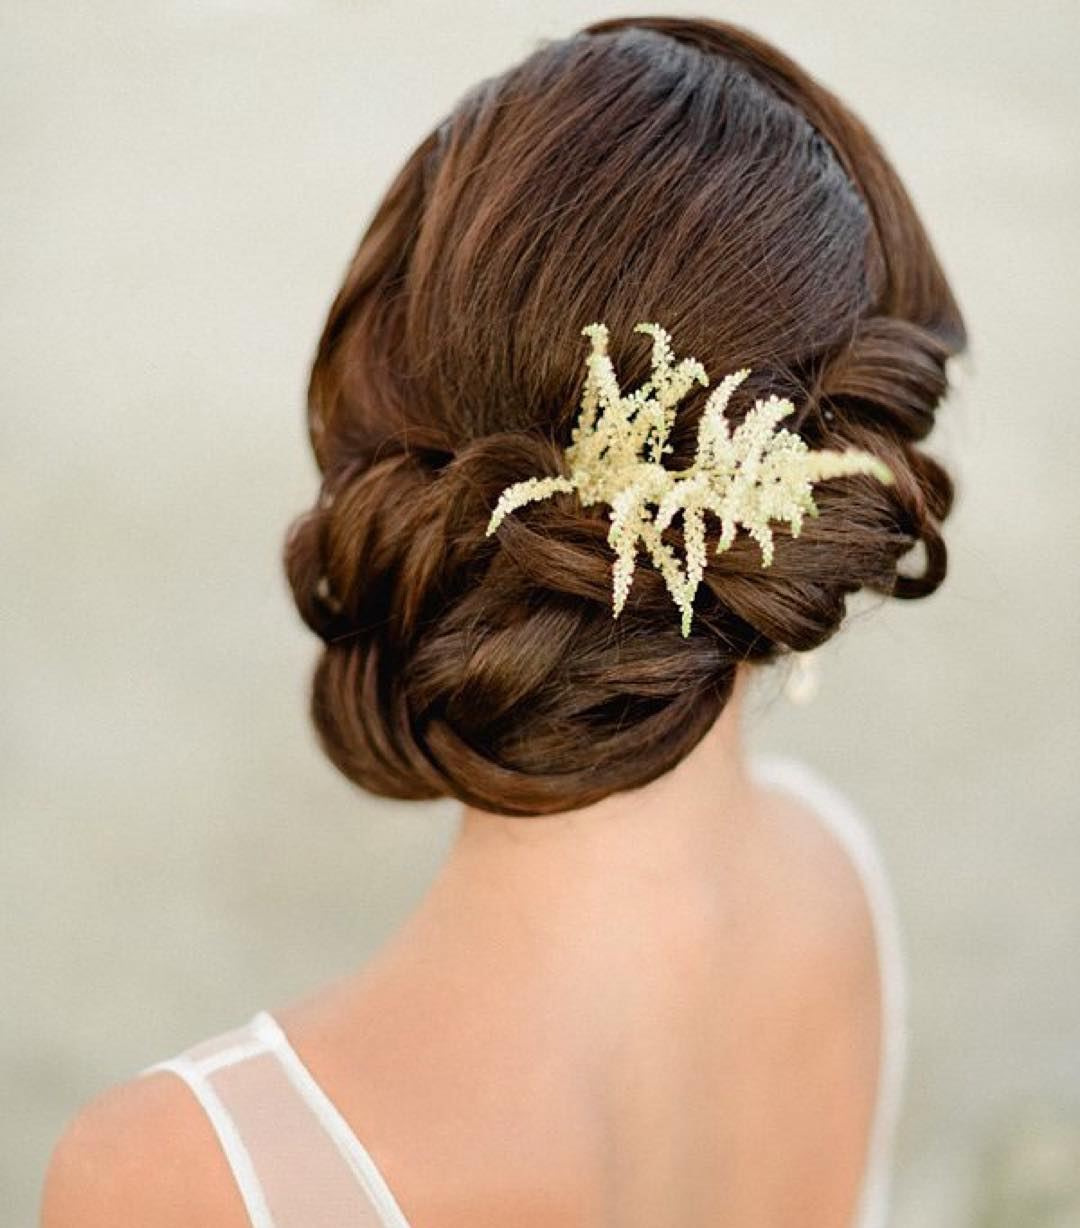 Simple Wedding Hair Ideas: 30+ Beach Wedding Hairstyles Ideas, Designs